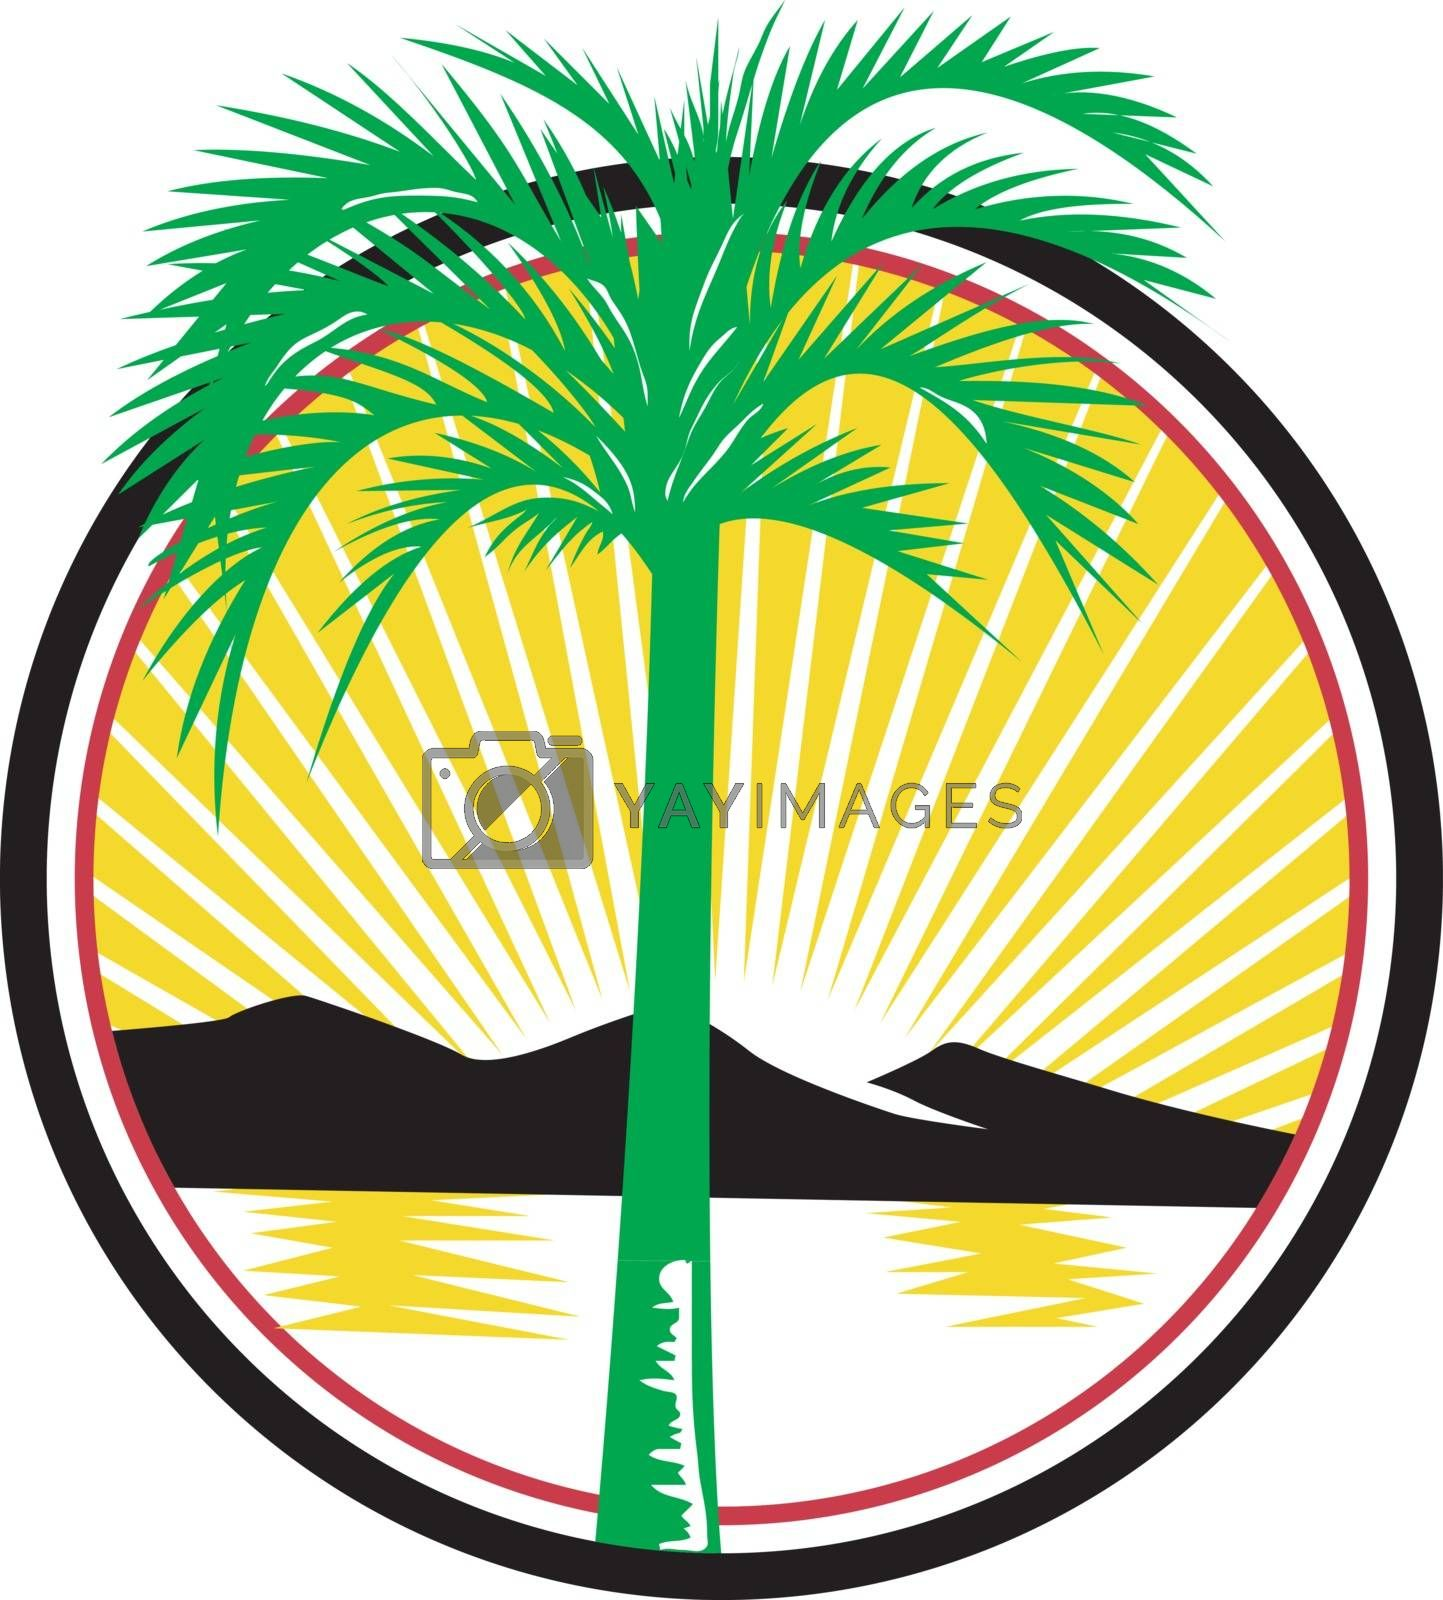 Retro style illustration of a royal palm tree with beach, sea or ocean and mountain in background set inside circle with sunburst on isolated background.